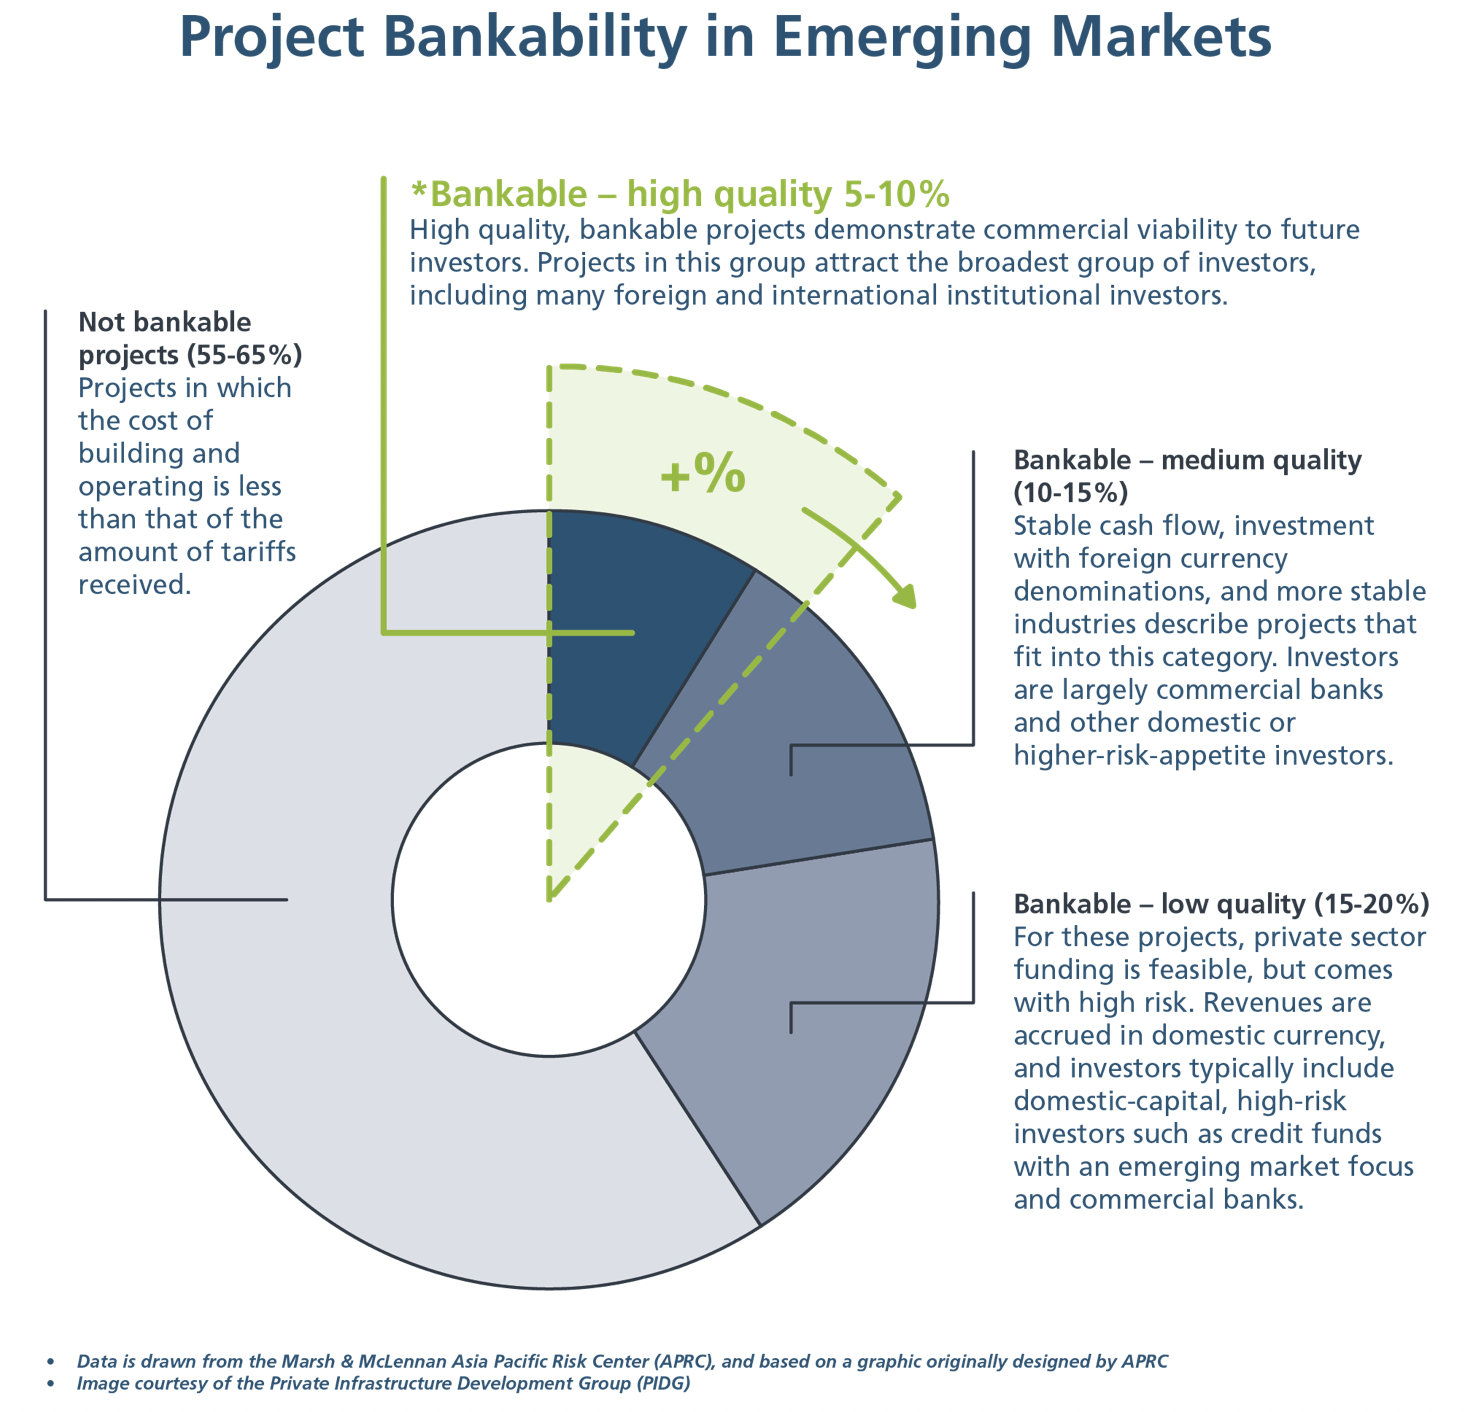 The situation of the bankability of projects in emerging markets